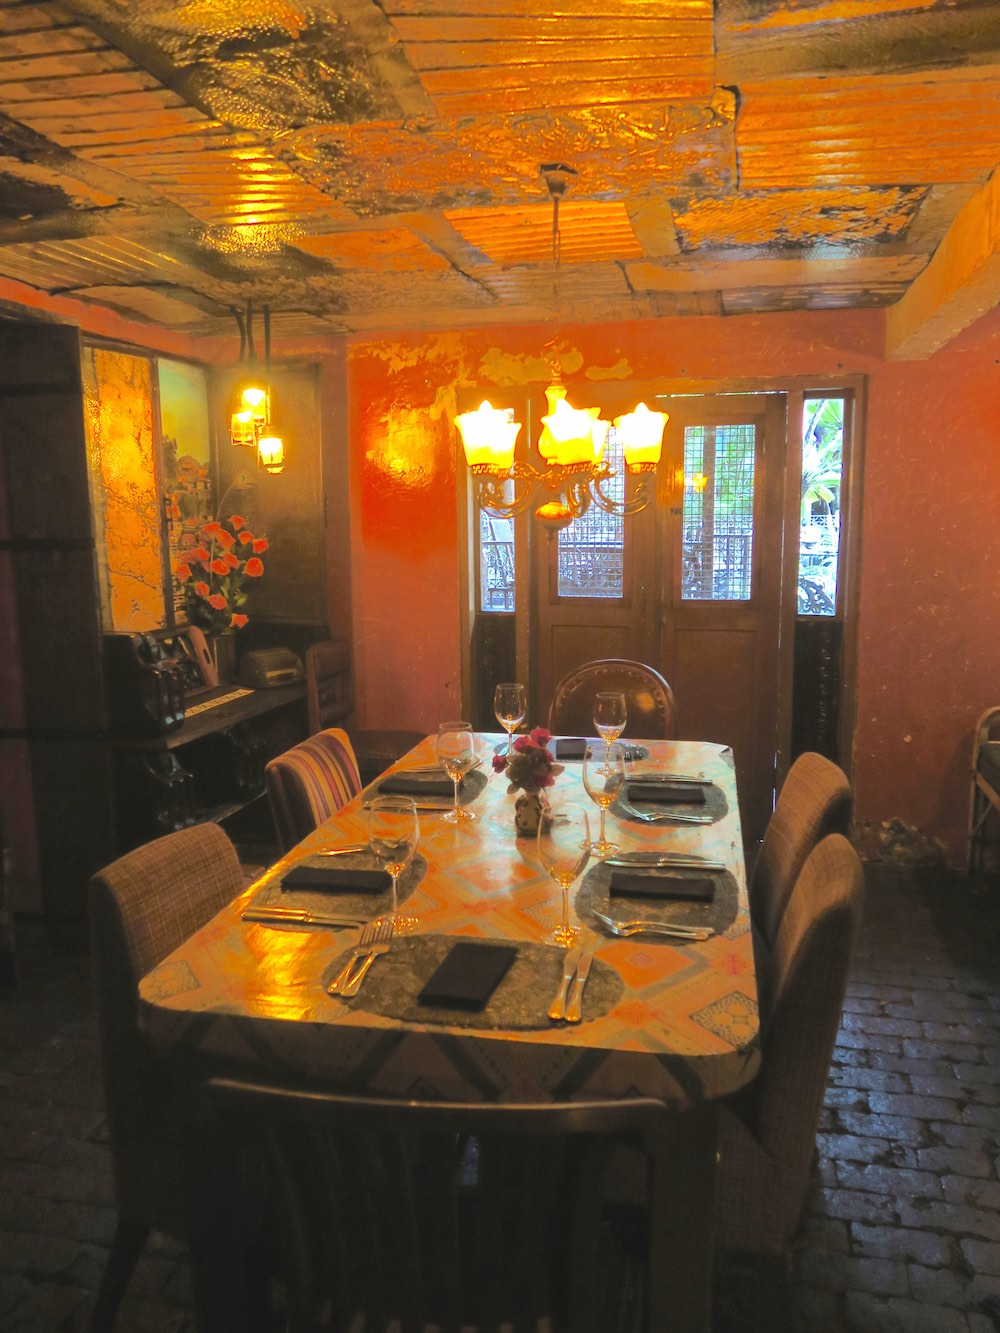 Yet another private dining room at La Favela |curlytraveller.com